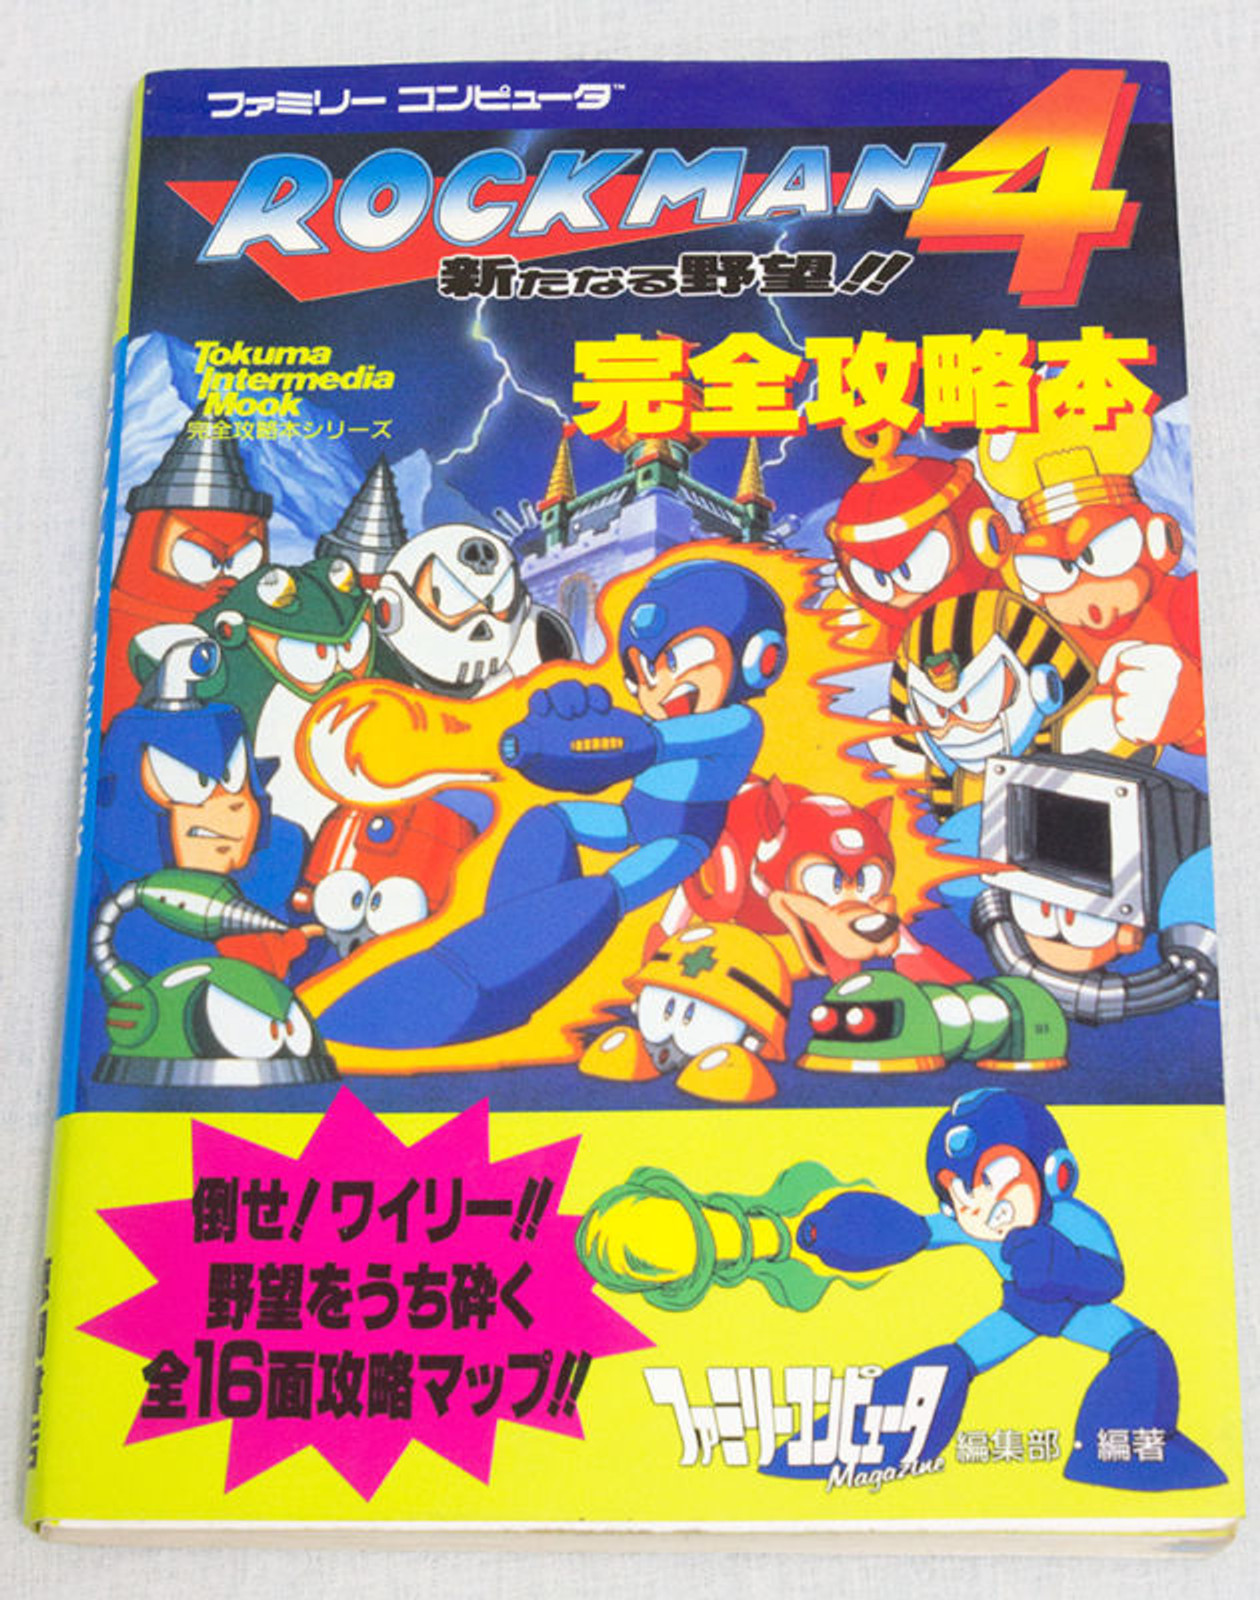 ROCKMAN 4 Megaman Complete Game Guide Book Japan Famicom NES